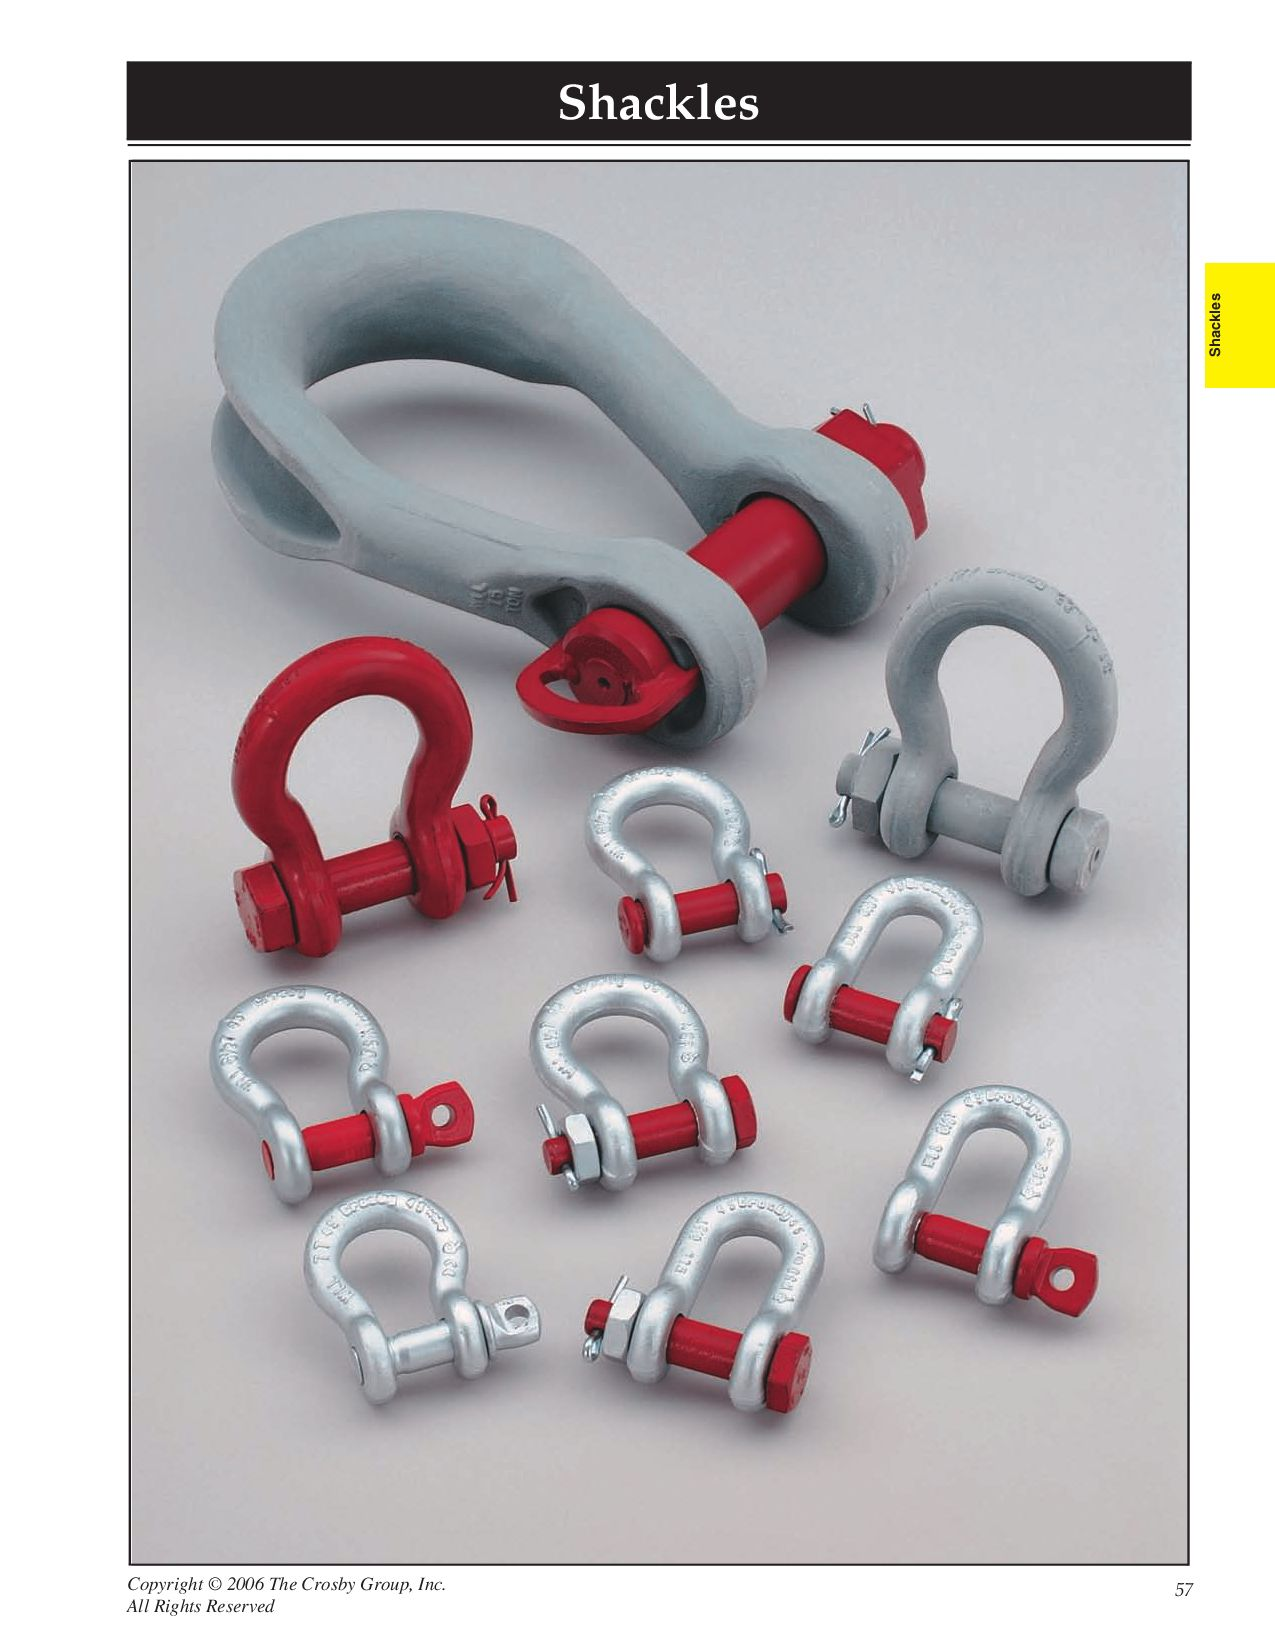 Galvanized 35 Ton Working Load Limit Crosby 1019098 Carbon Steel G-215 Round Pin Chain Shackle 2 Size